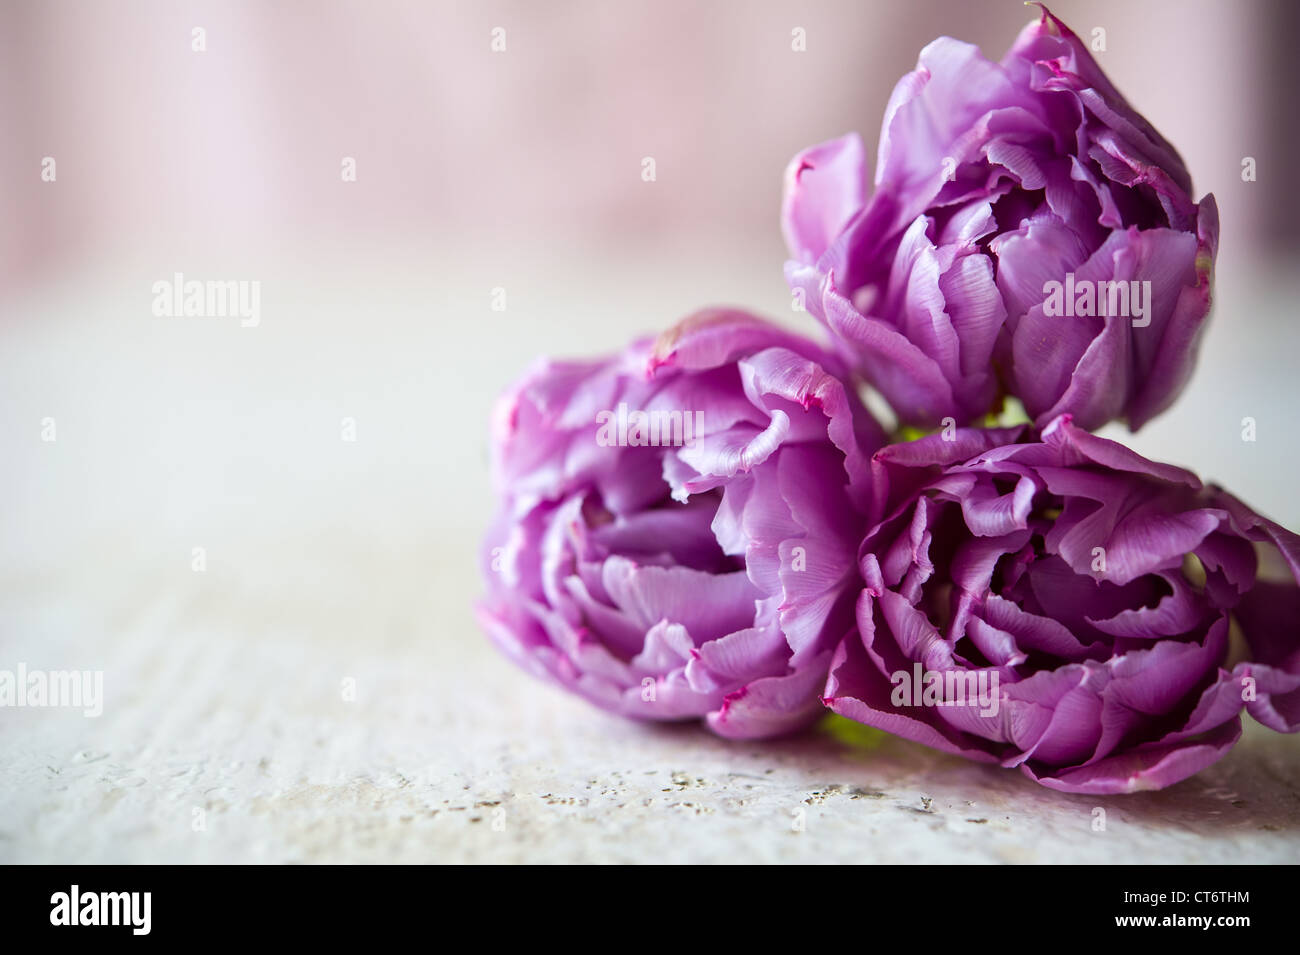 Bouquet of three purple tulips lays on the white table. Blurring background with copy space, shallow DOF Stock Photo